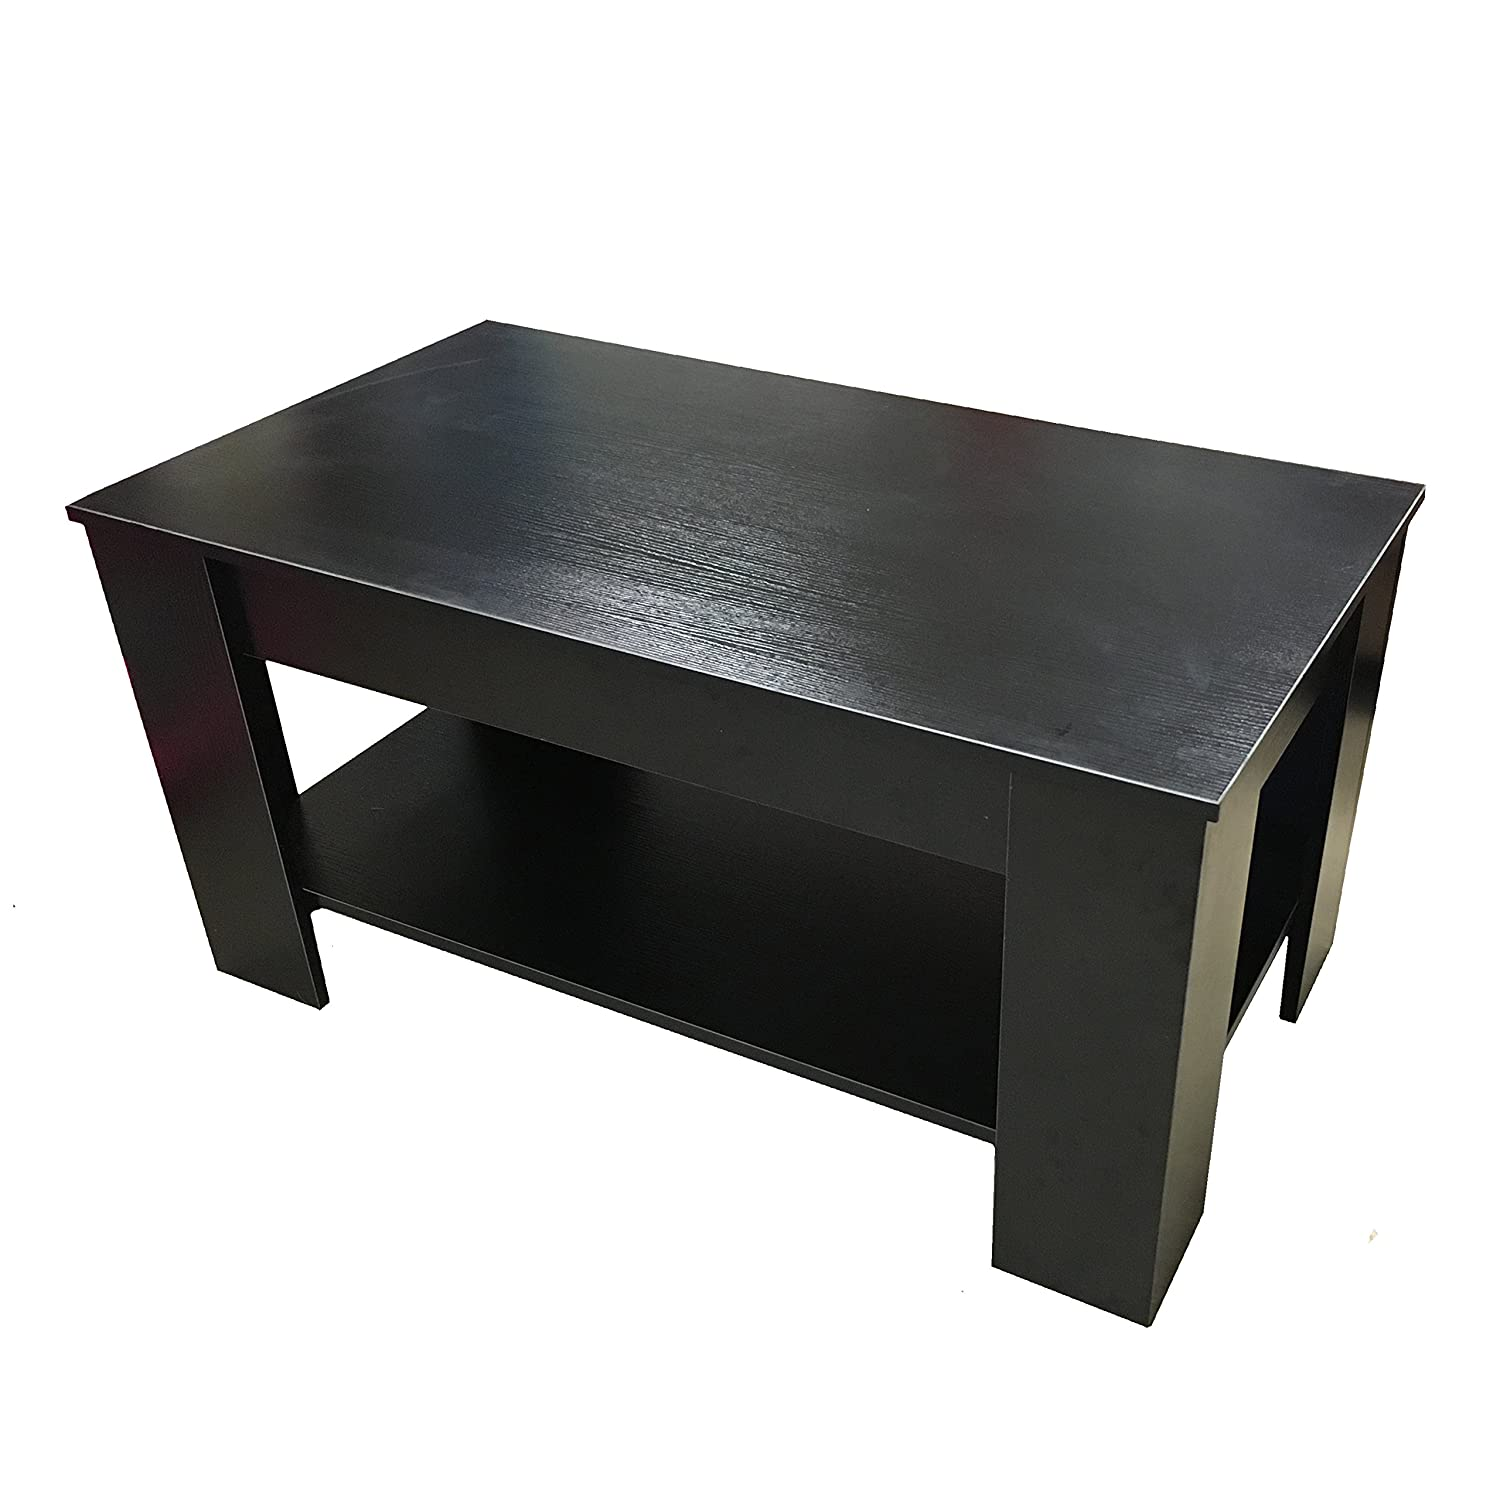 "Redstone Coffee Table Black or Dark Walnut "" "" Lift Up Top with"